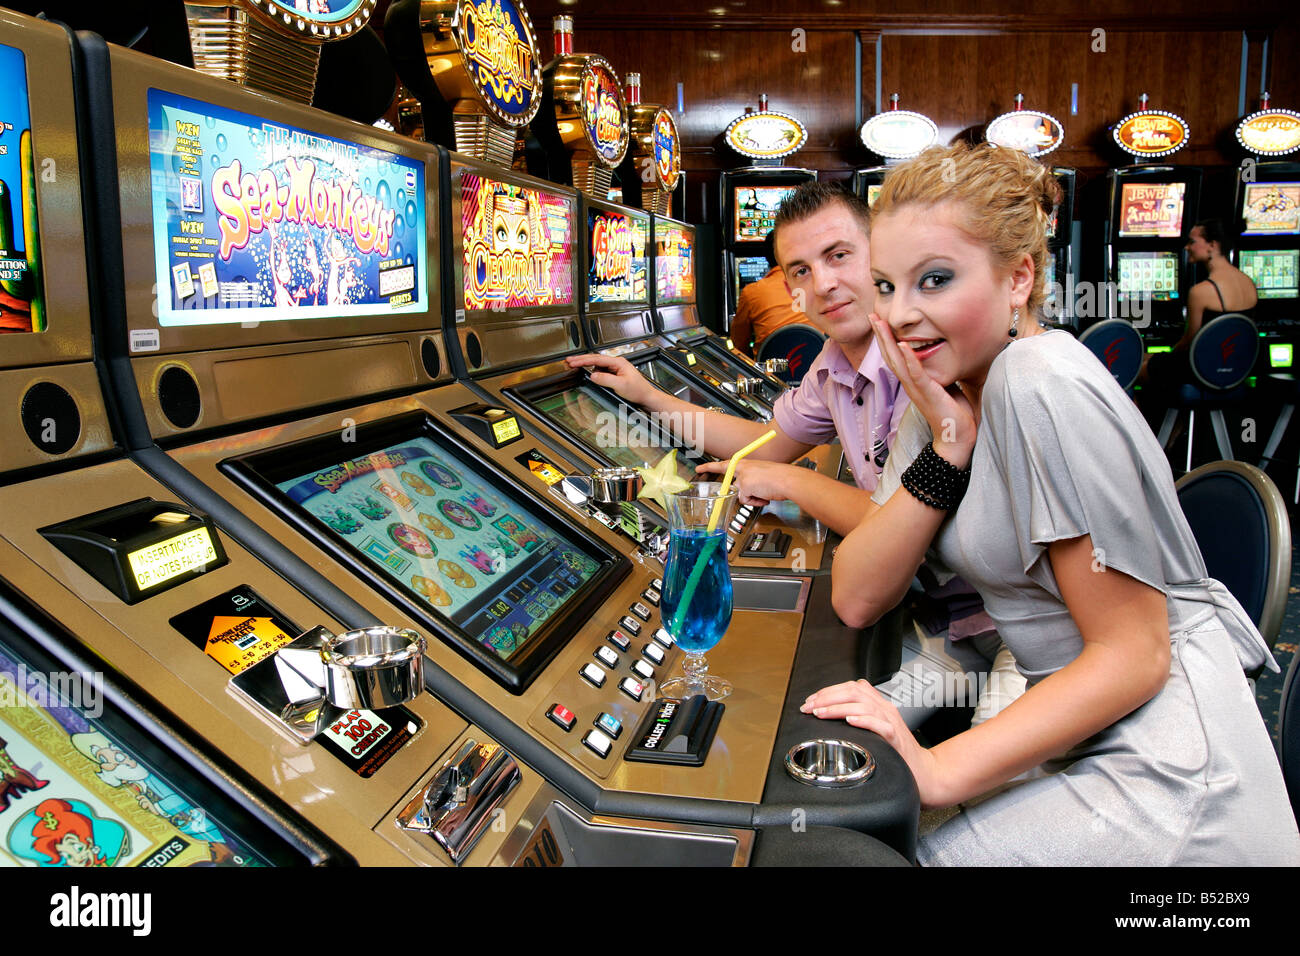 Add a HTML5 Slot Machine to your Site